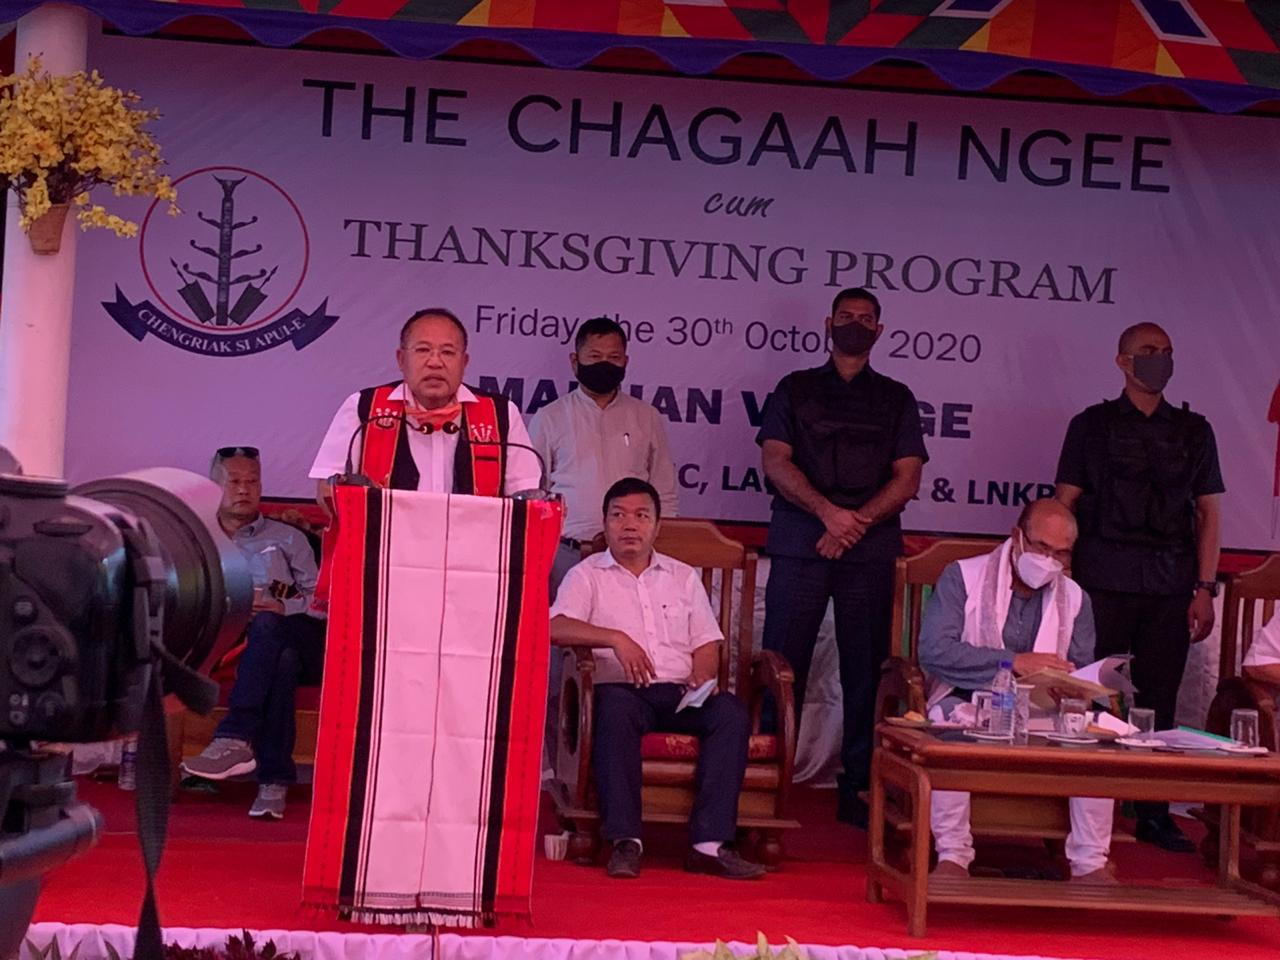 Chagaa Ngee festival to be restricted state holiday: CM